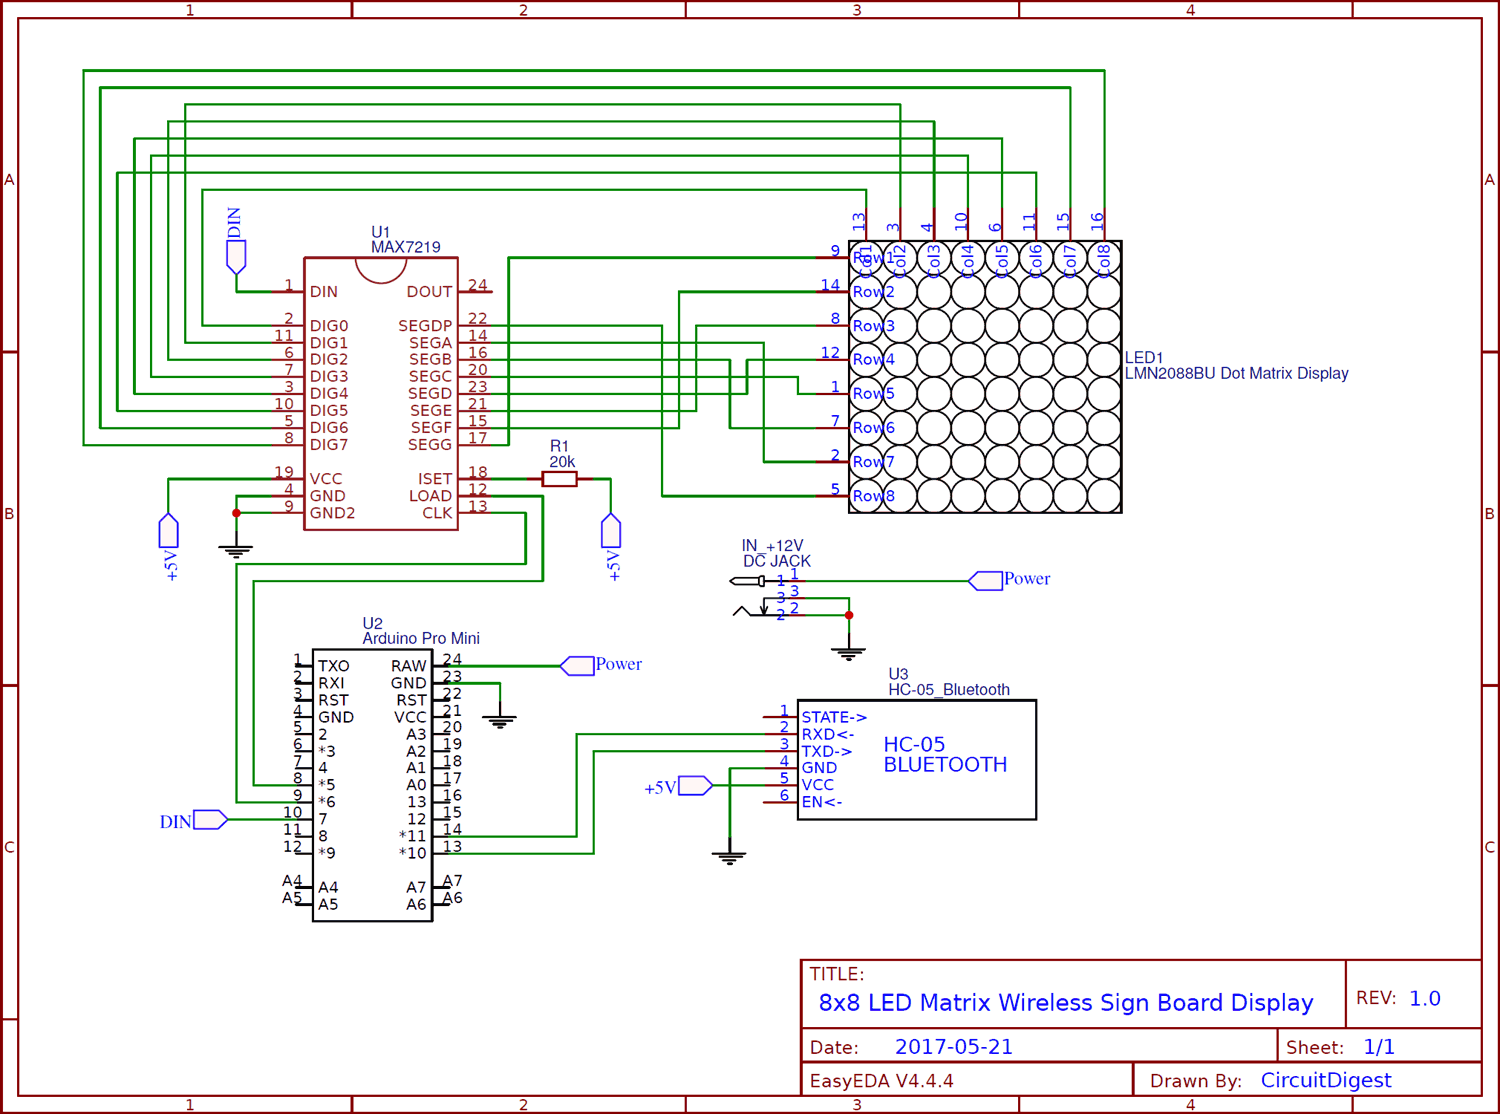 hight resolution of circuit diagram for bluetooth controlled 8x8 led wireless sign board display using arduino